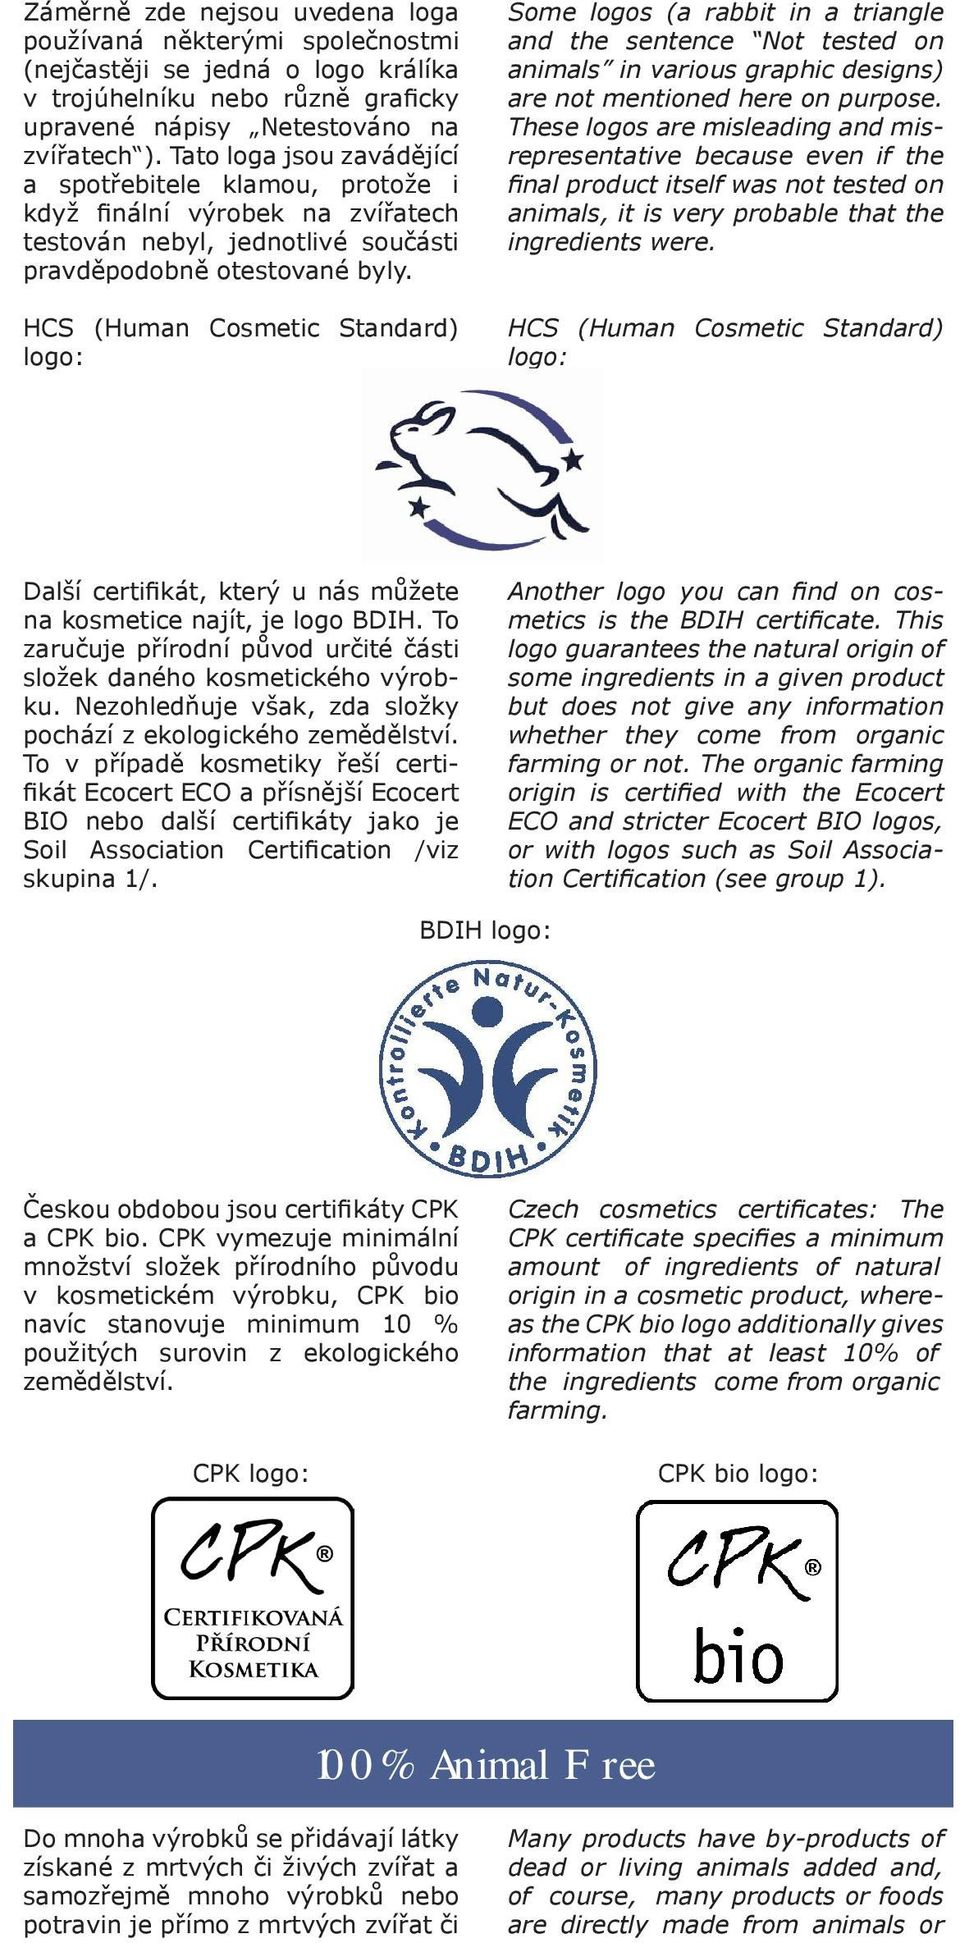 HCS (Human Cosmetic Standard) logo: Some logos (a rabbit in a triangle and the sentence Not tested on animals in various graphic designs) are not mentioned here on purpose.